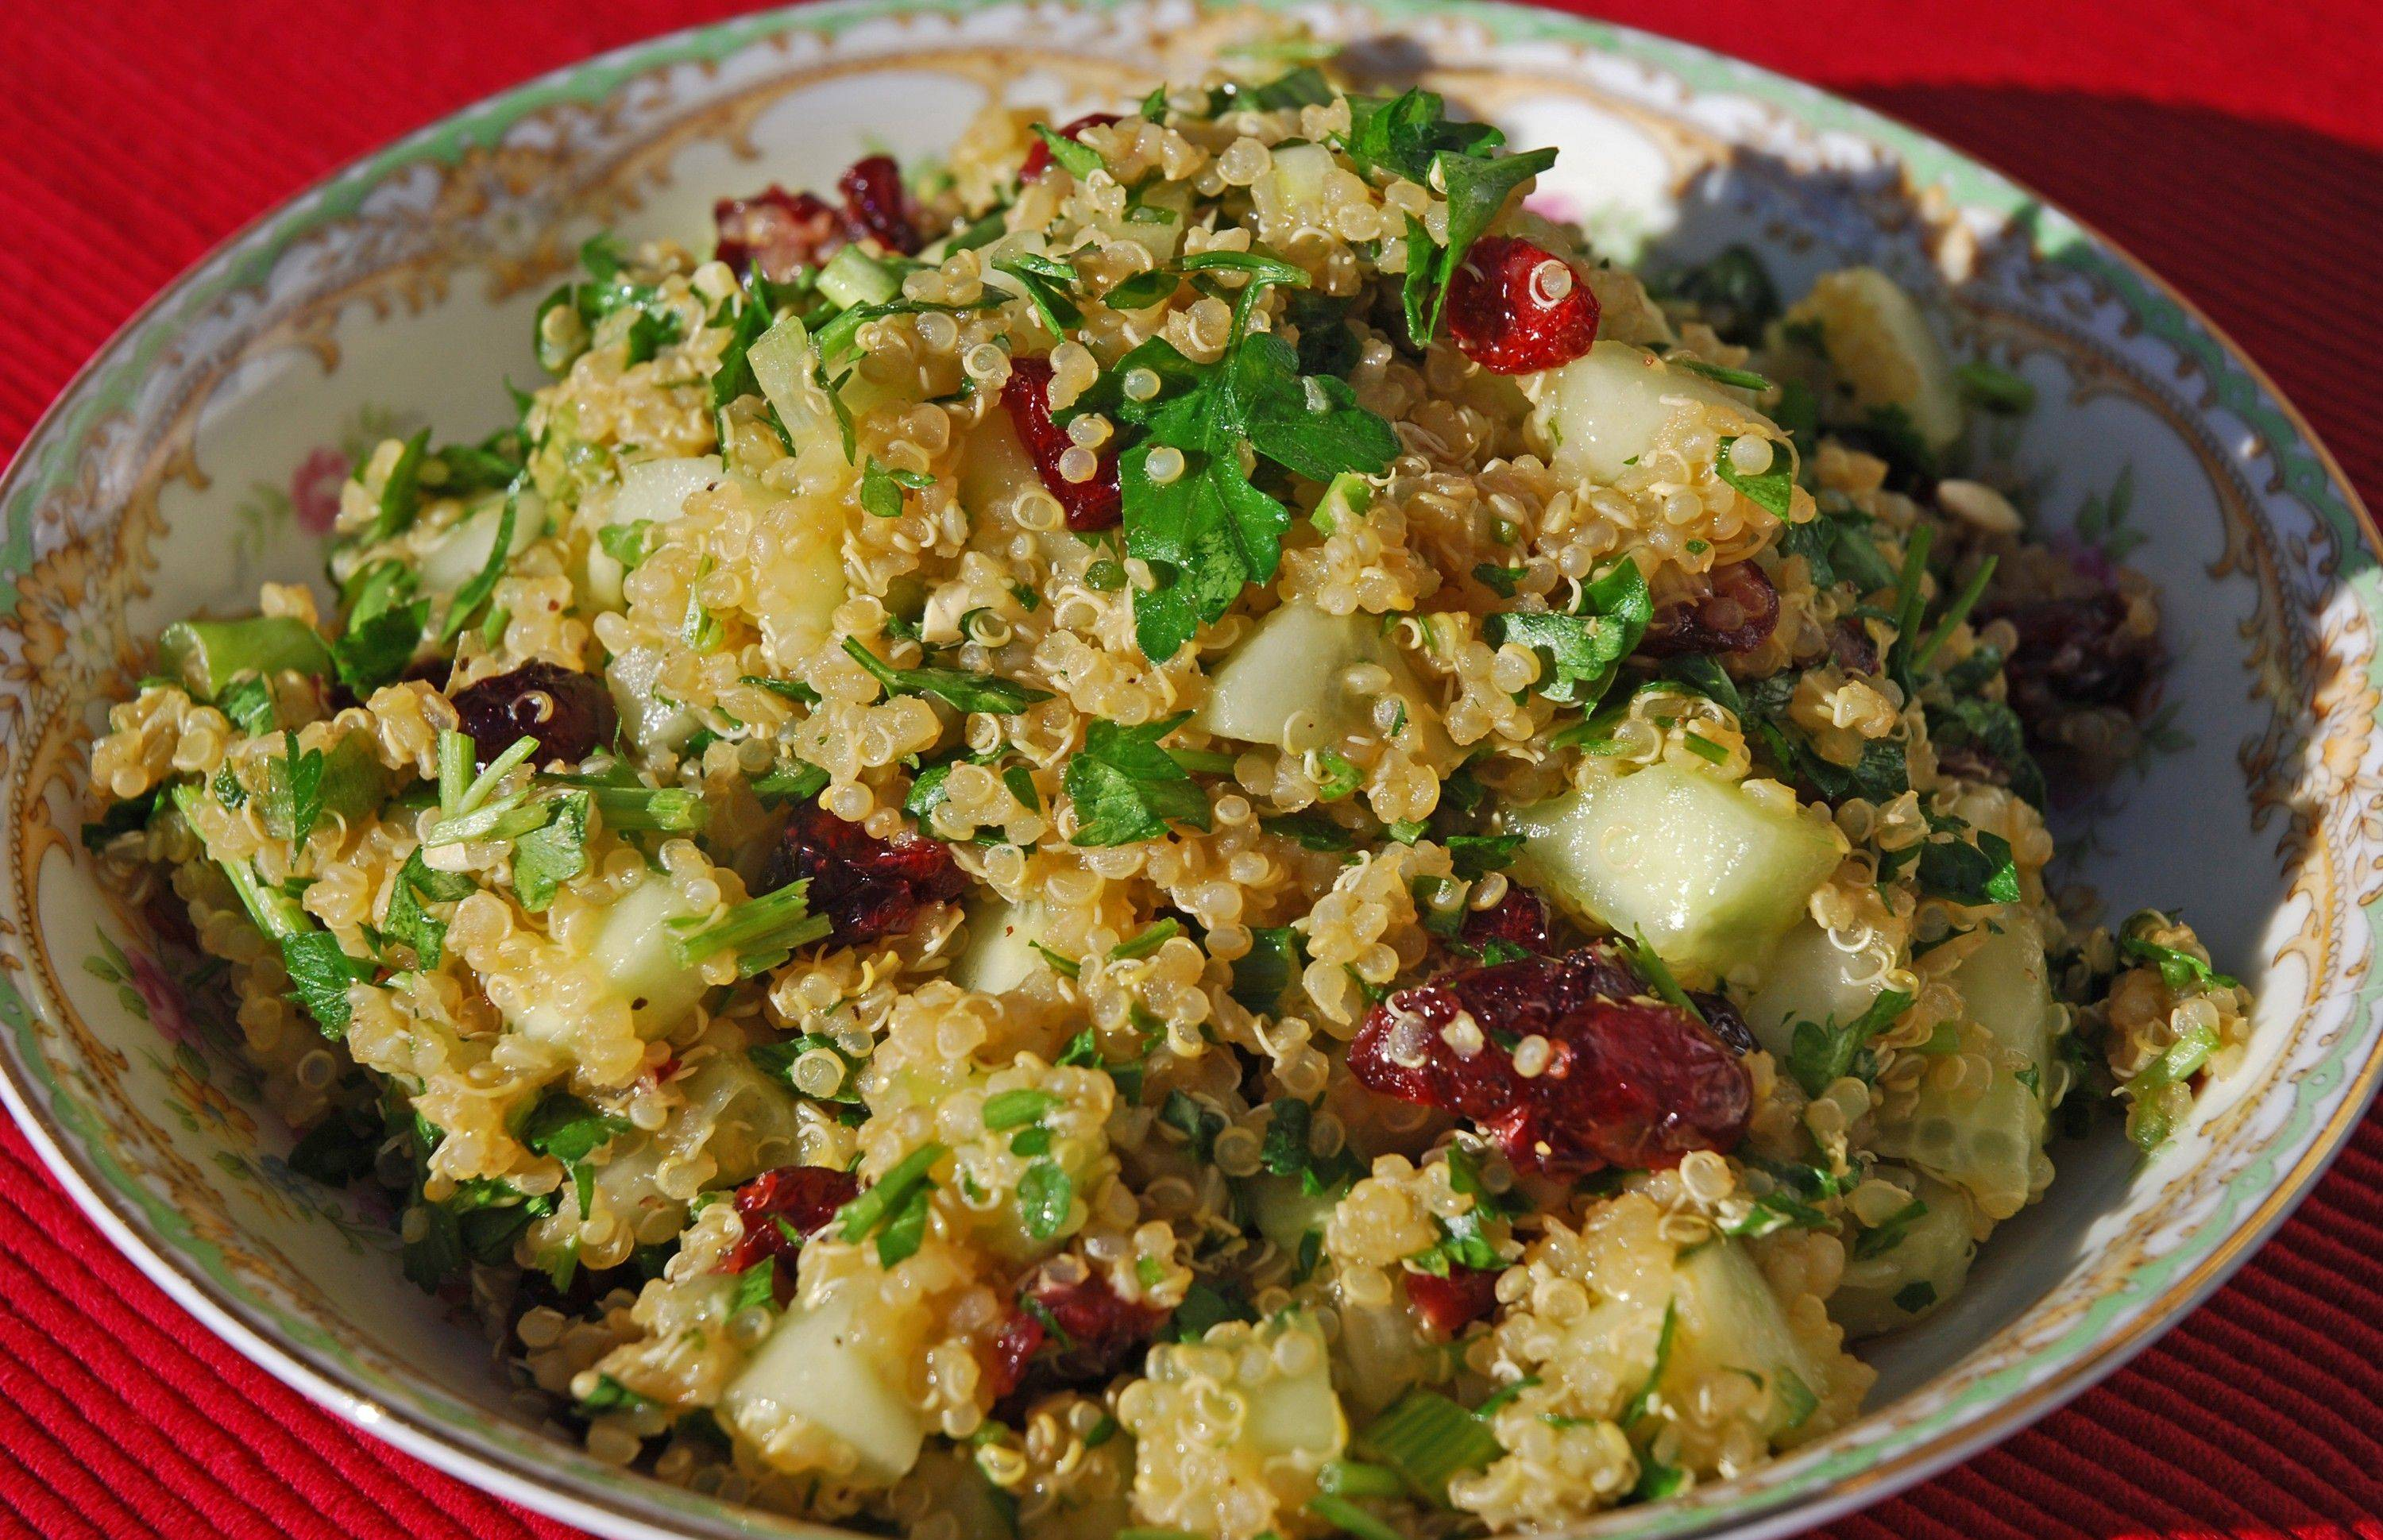 Quinoa, an ancient grain that is enjoying renewed popularity, contributes protein and a nutty-flavor to this tabbouleh-like salad.